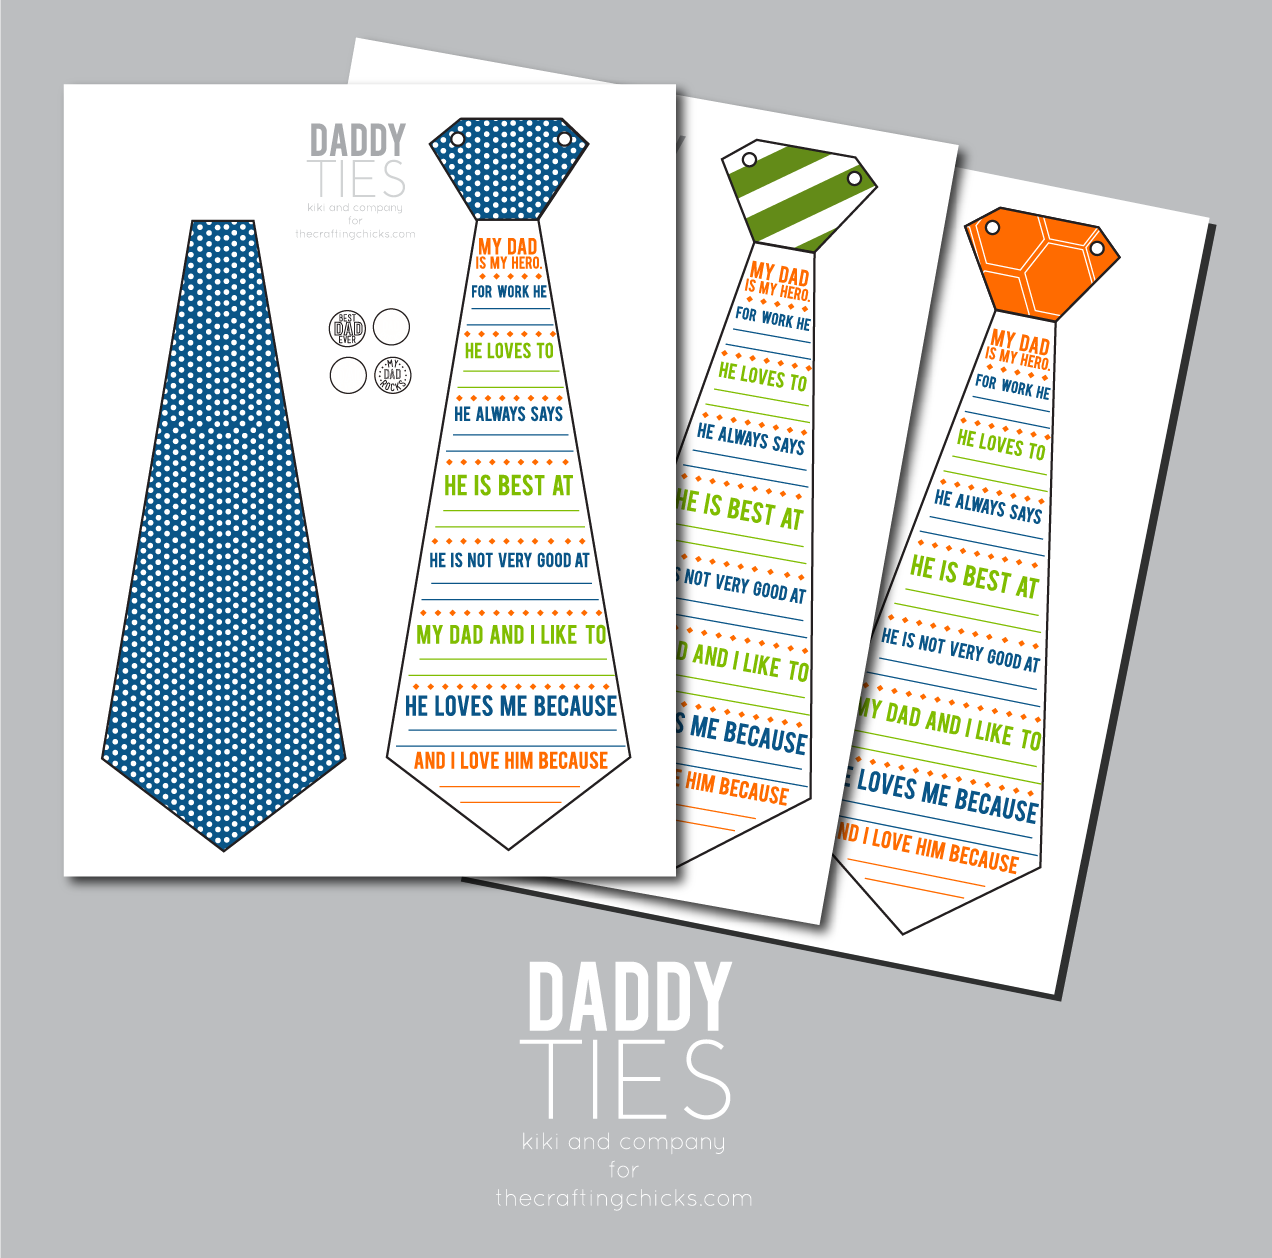 picture regarding Father's Day Tie Template Printable named Daddy Ties- A Fathers Working day Printable Card - Kiki Organization